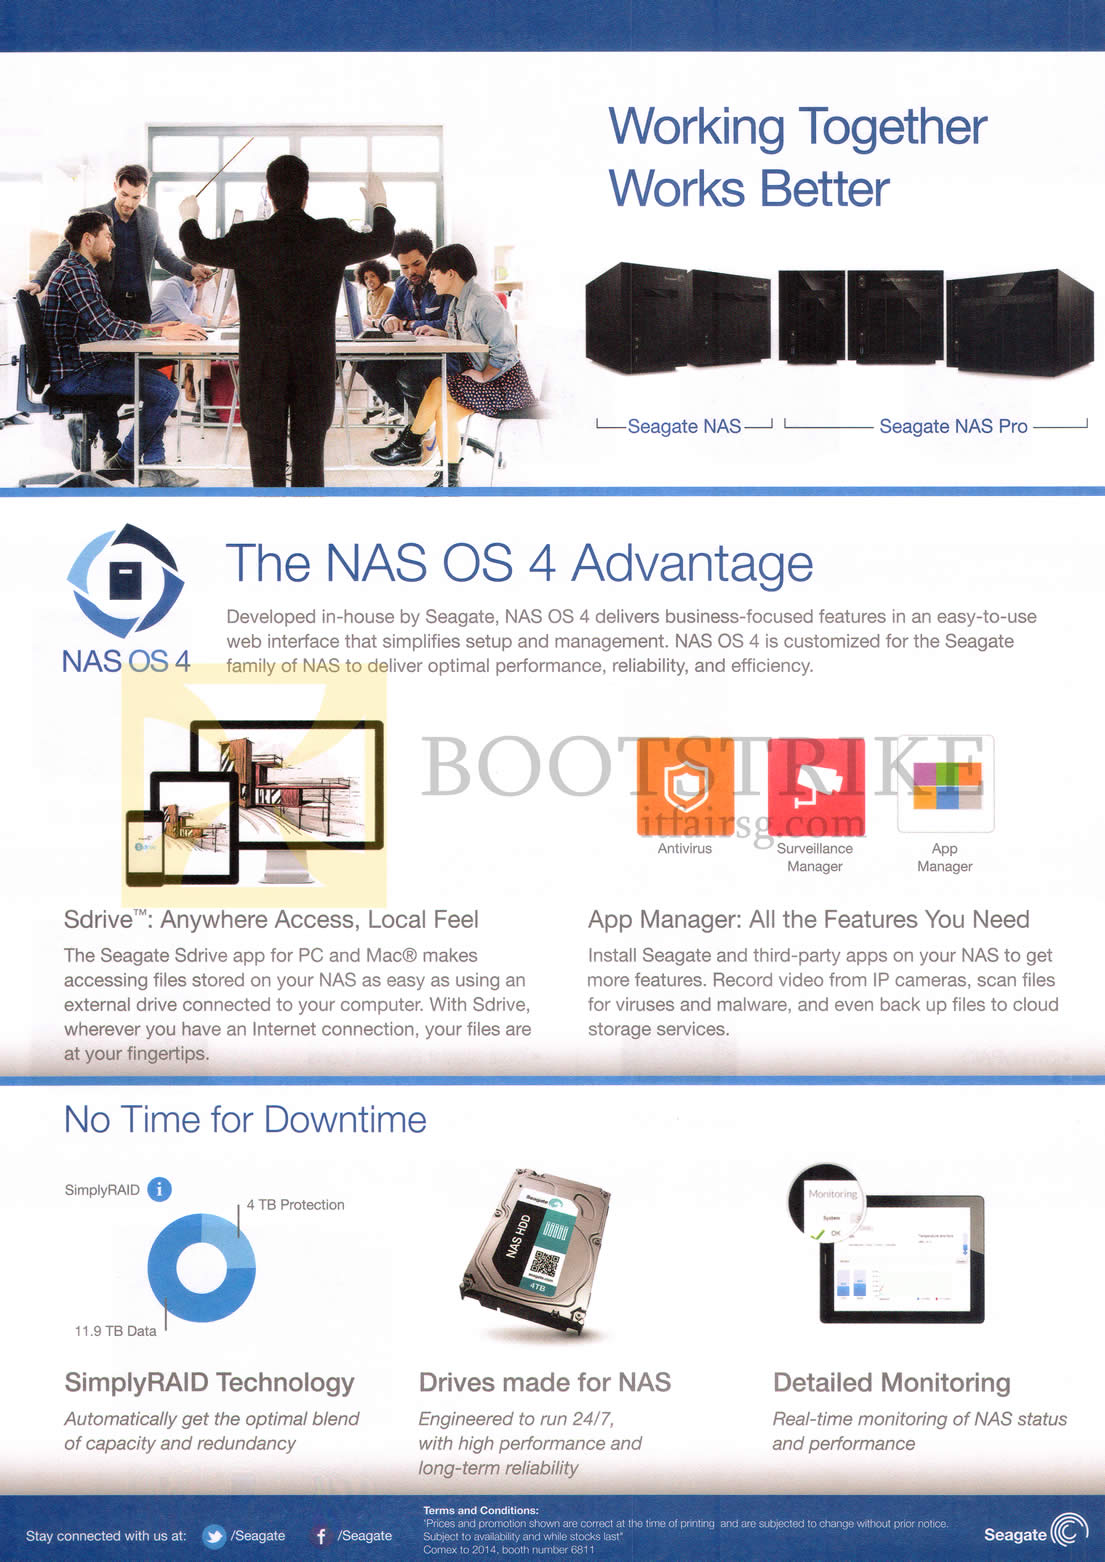 COMEX 2014 price list image brochure of Seagate NAS Pro Features OS 4 Advantage, SimplyRaid